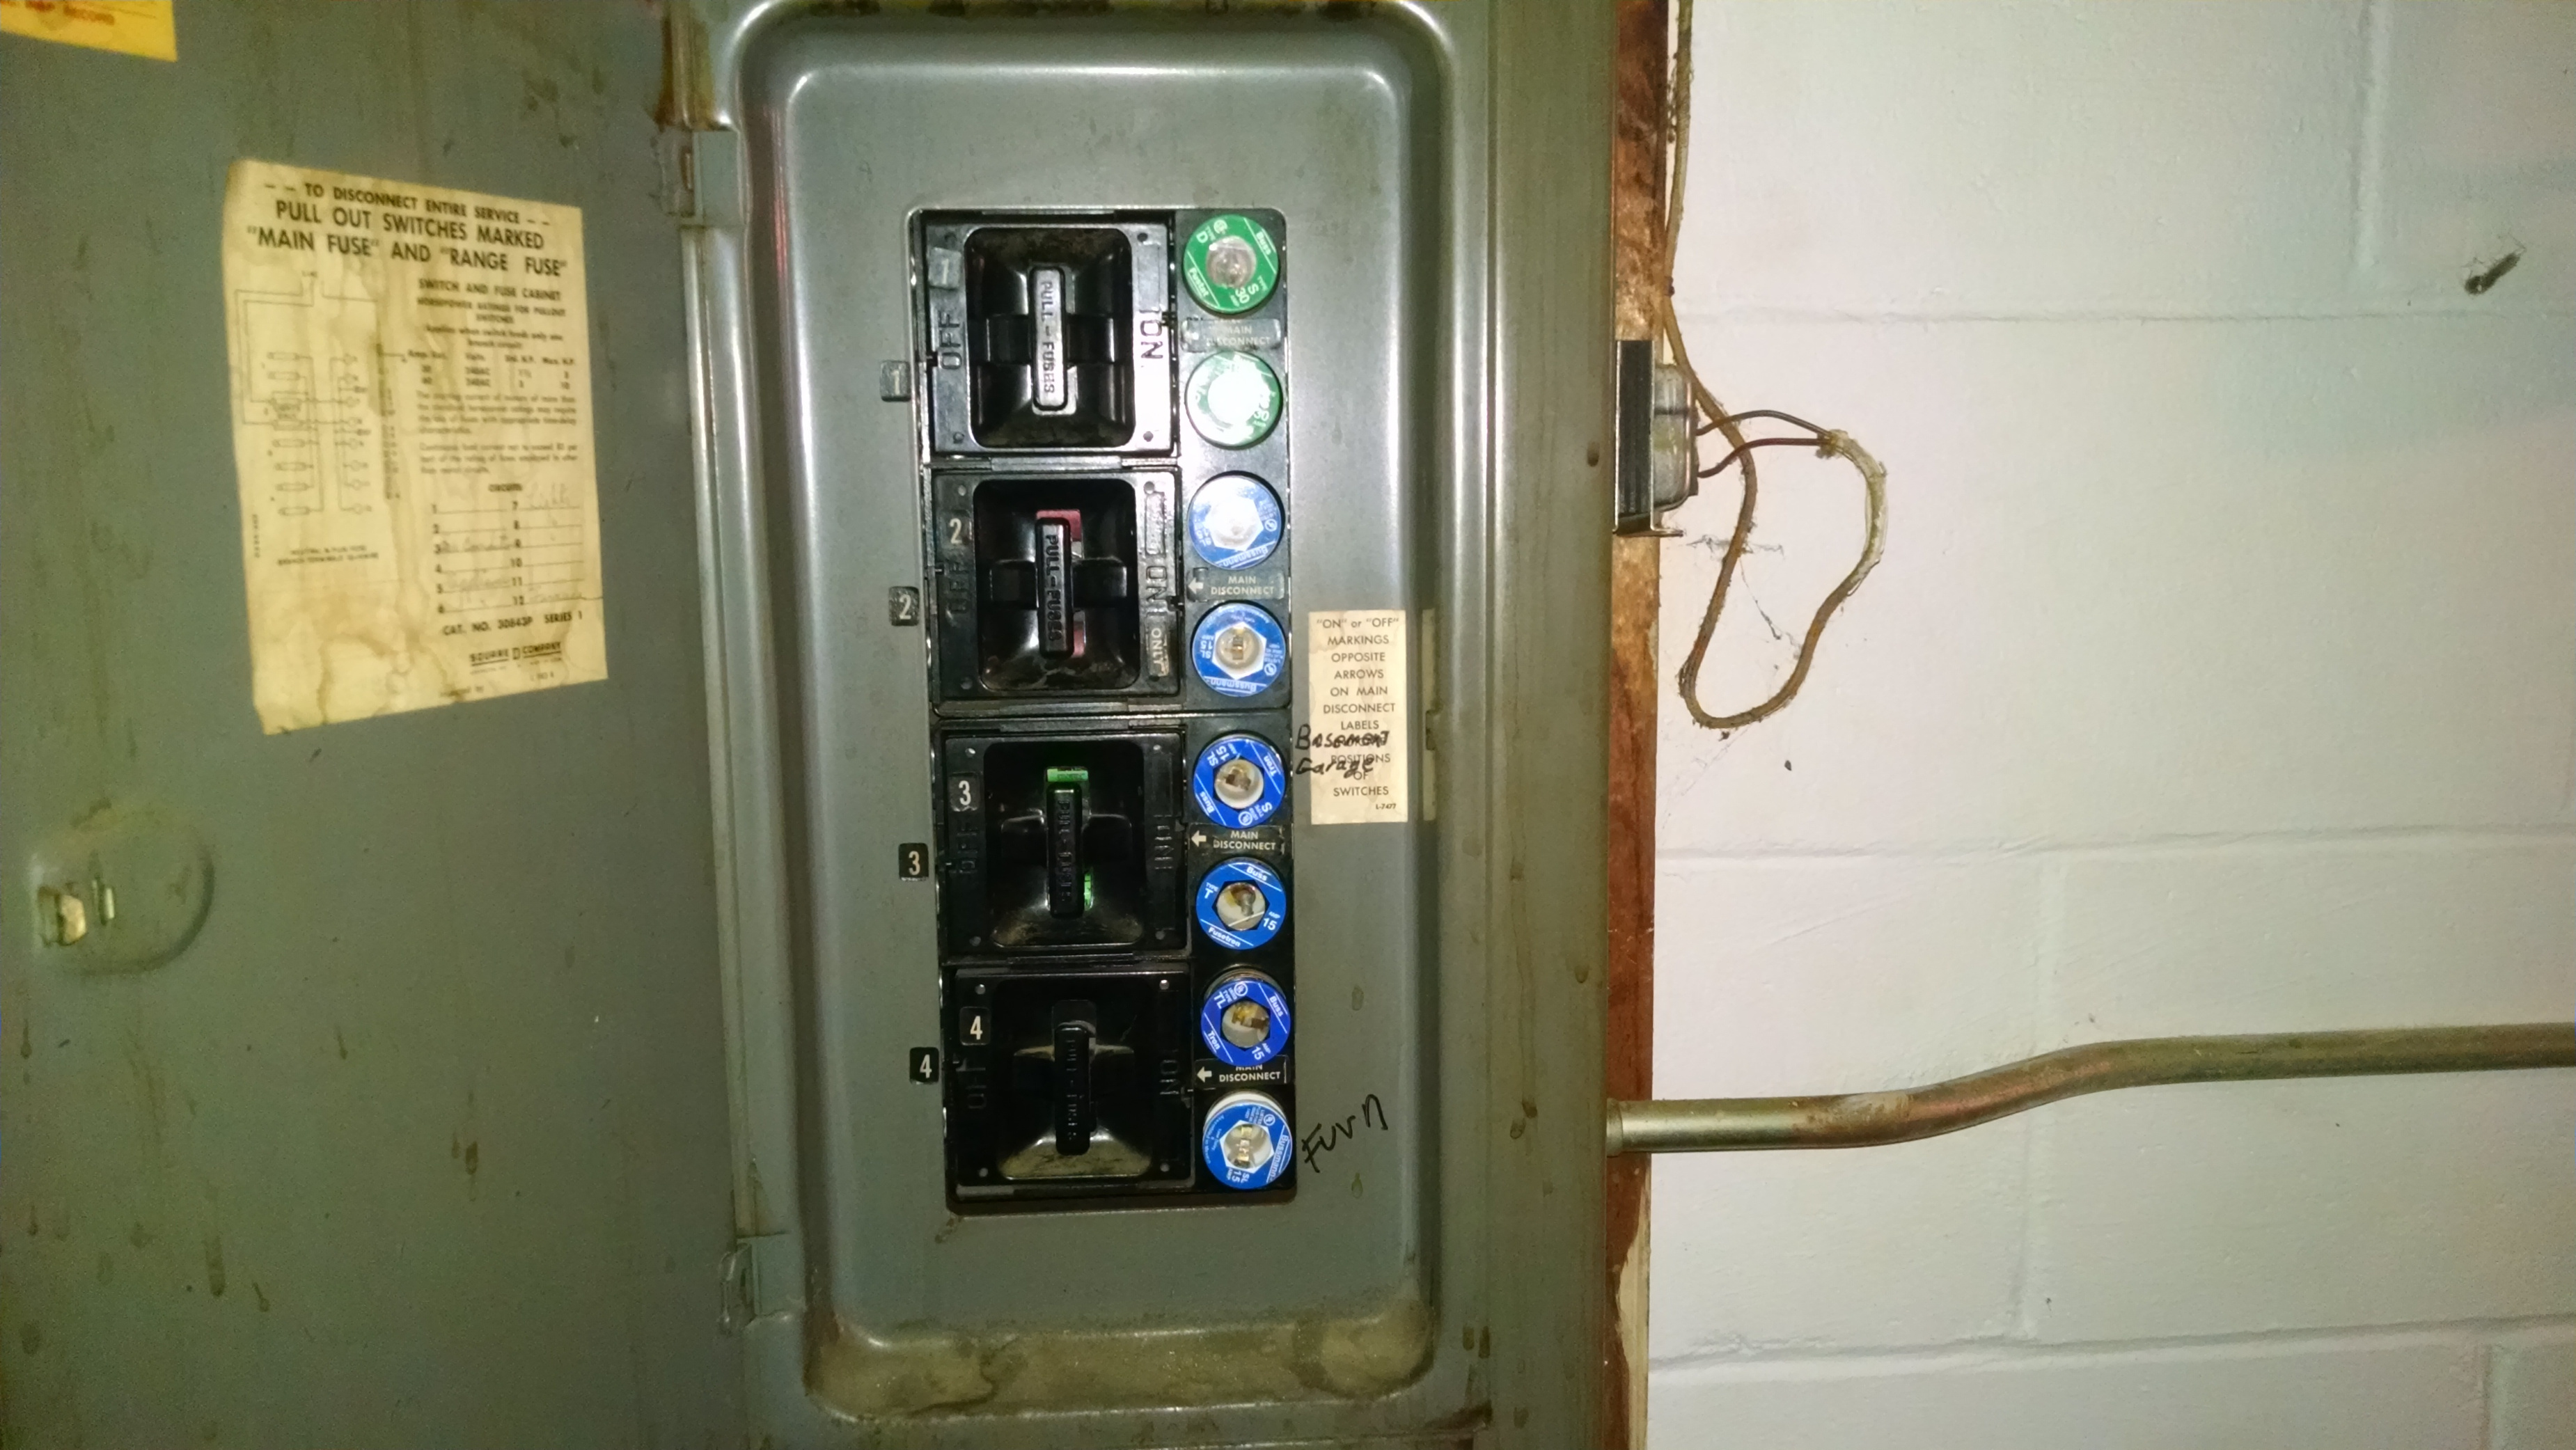 Who Knows Fuse Boxes Blog Level1techs Forums Electical Box Fuses It Belongs In A Museum Indiana Jones So Heres My